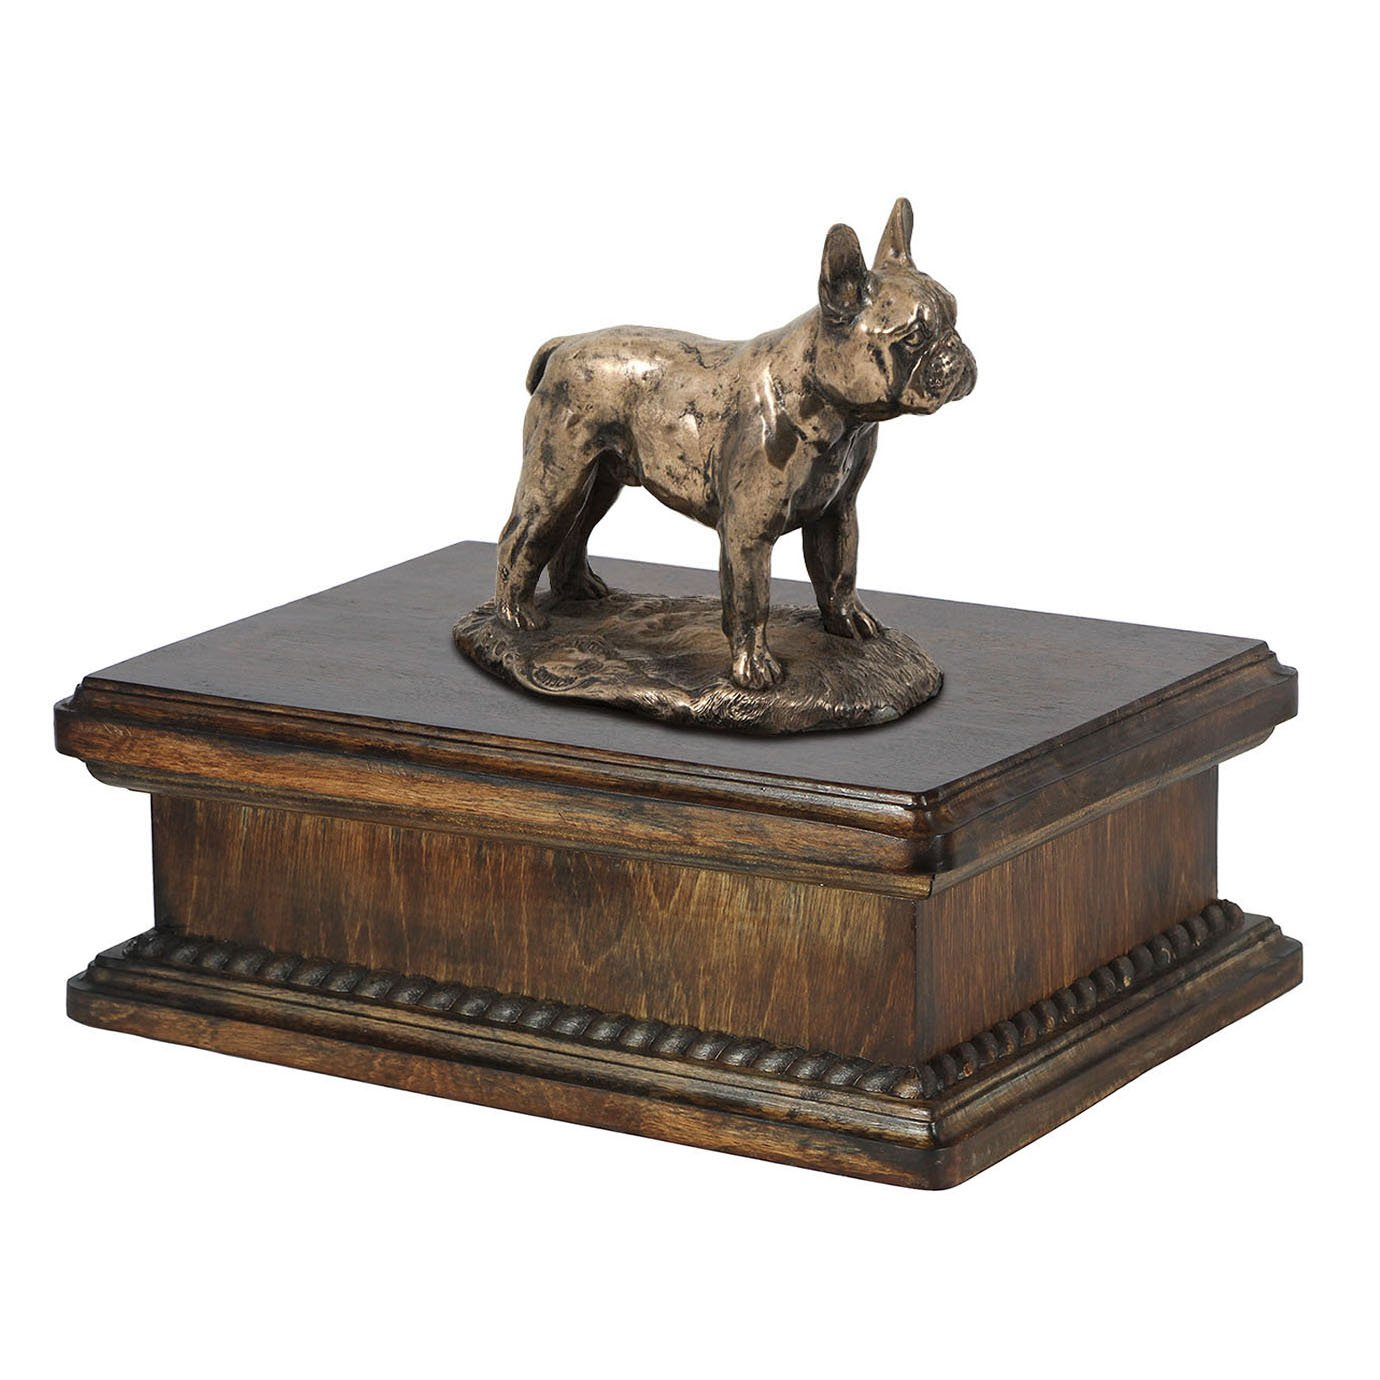 French Bulldog, memorial, urn for dog's ashes, with dog statue, exclusive, ArtDog